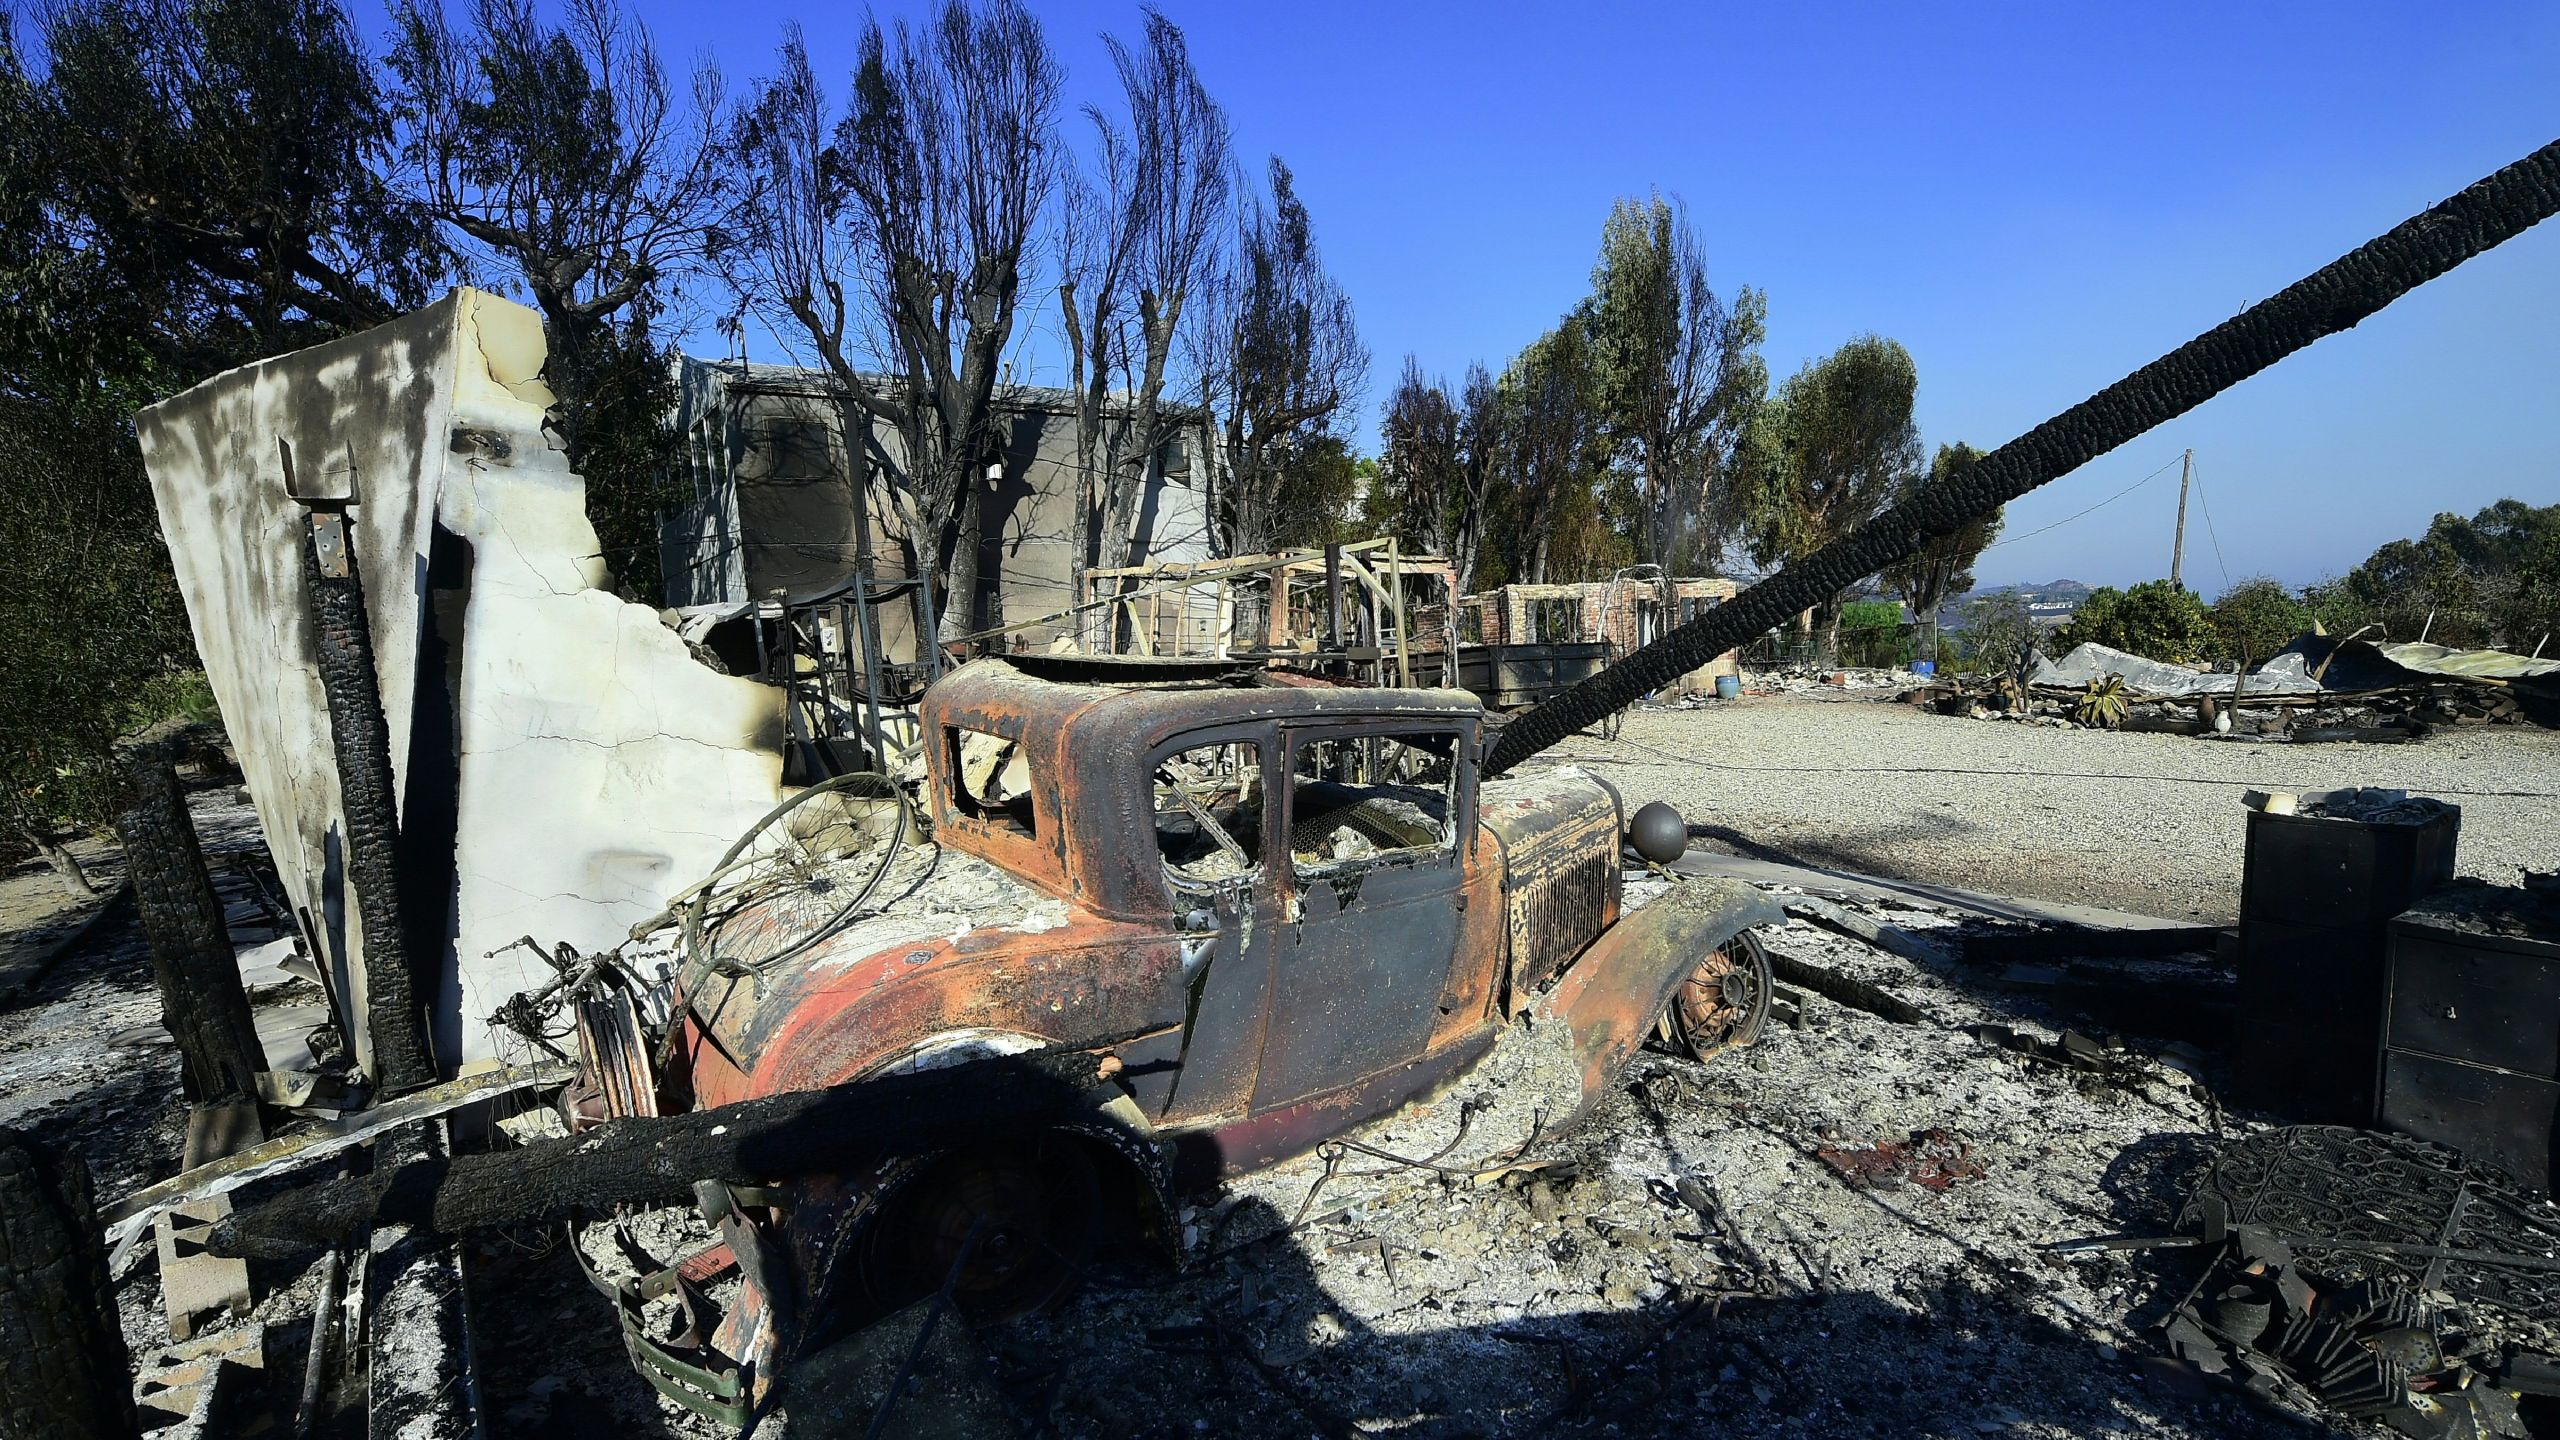 The remains of a fire-damaged home are seen off Kanan Dume Road, a canyon road which cuts across the mountains to Malibu, on November 11, 2018, as the battle to control the Woolsey Fire continues. (Credit: FREDERIC J. BROWN/AFP/Getty Images)